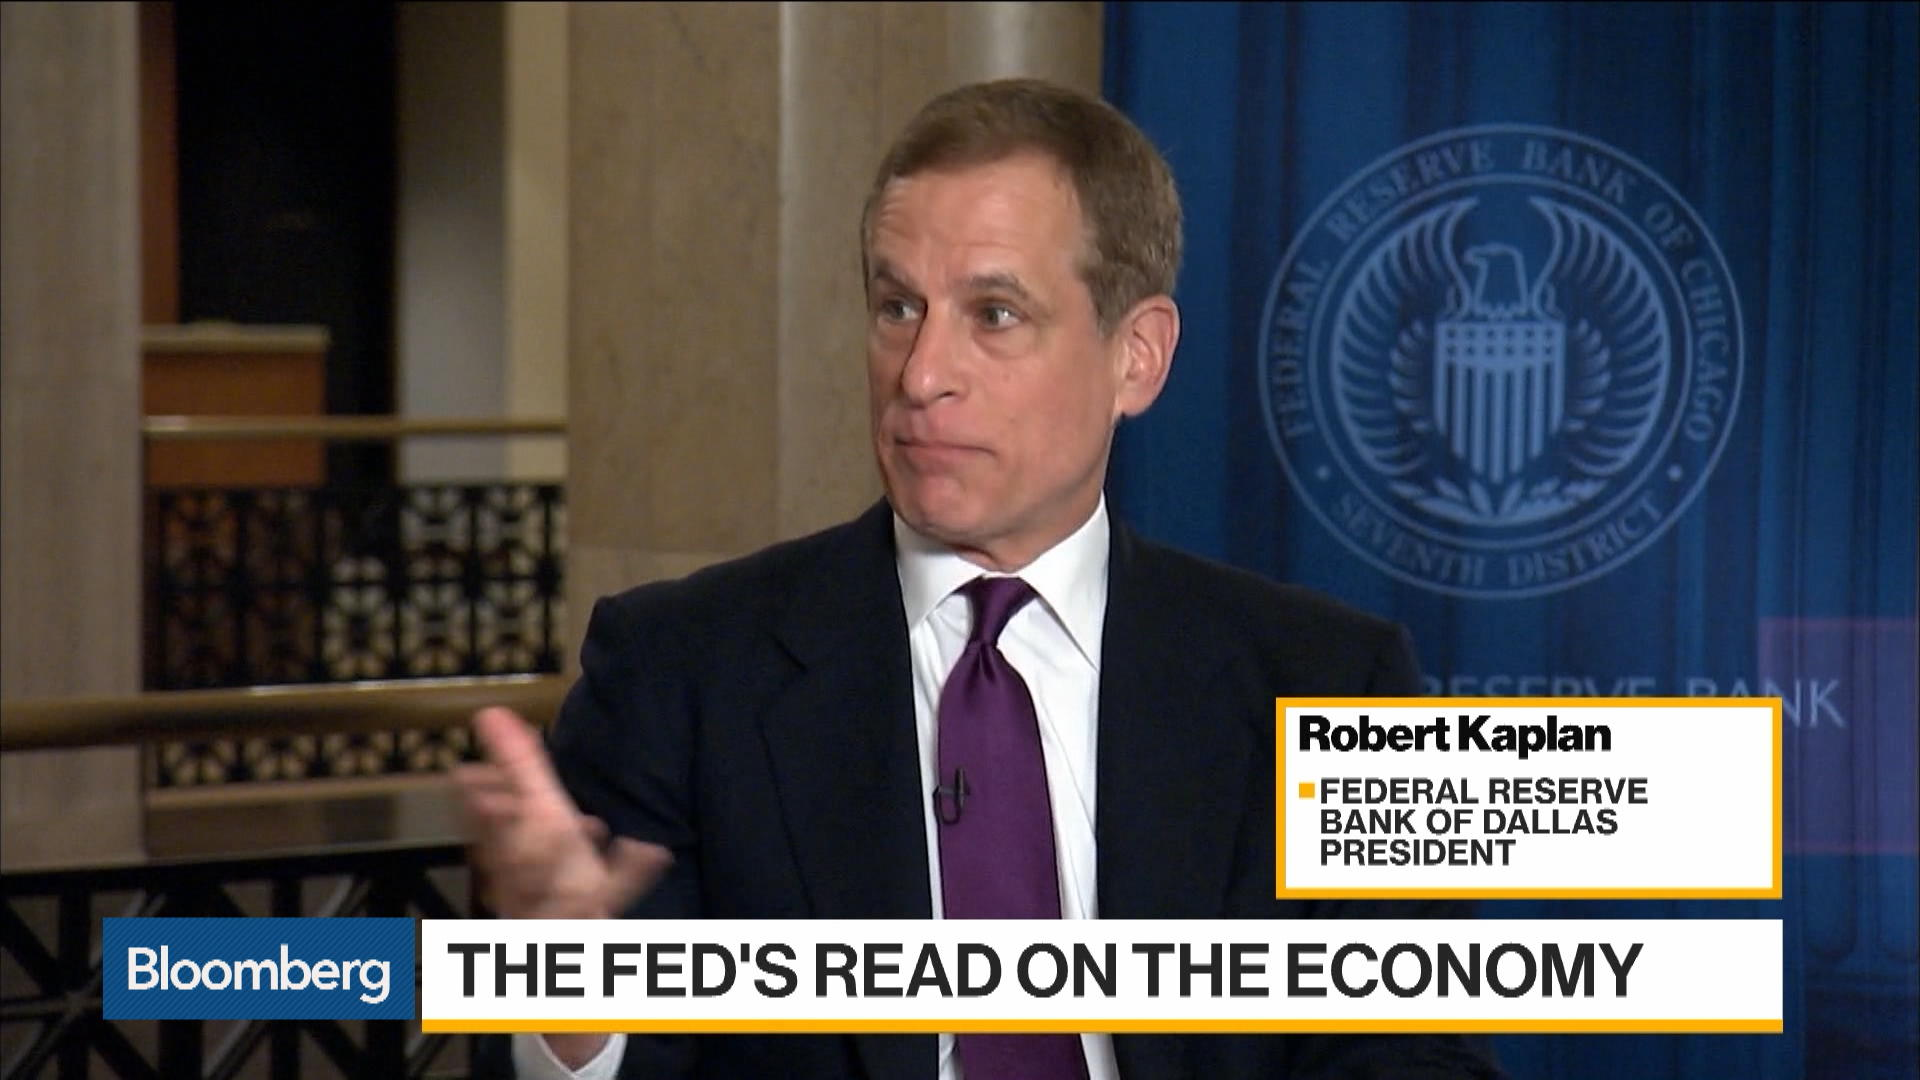 Fed's Kaplan Says Too Soon to Make Judgement on Rate Cut Call